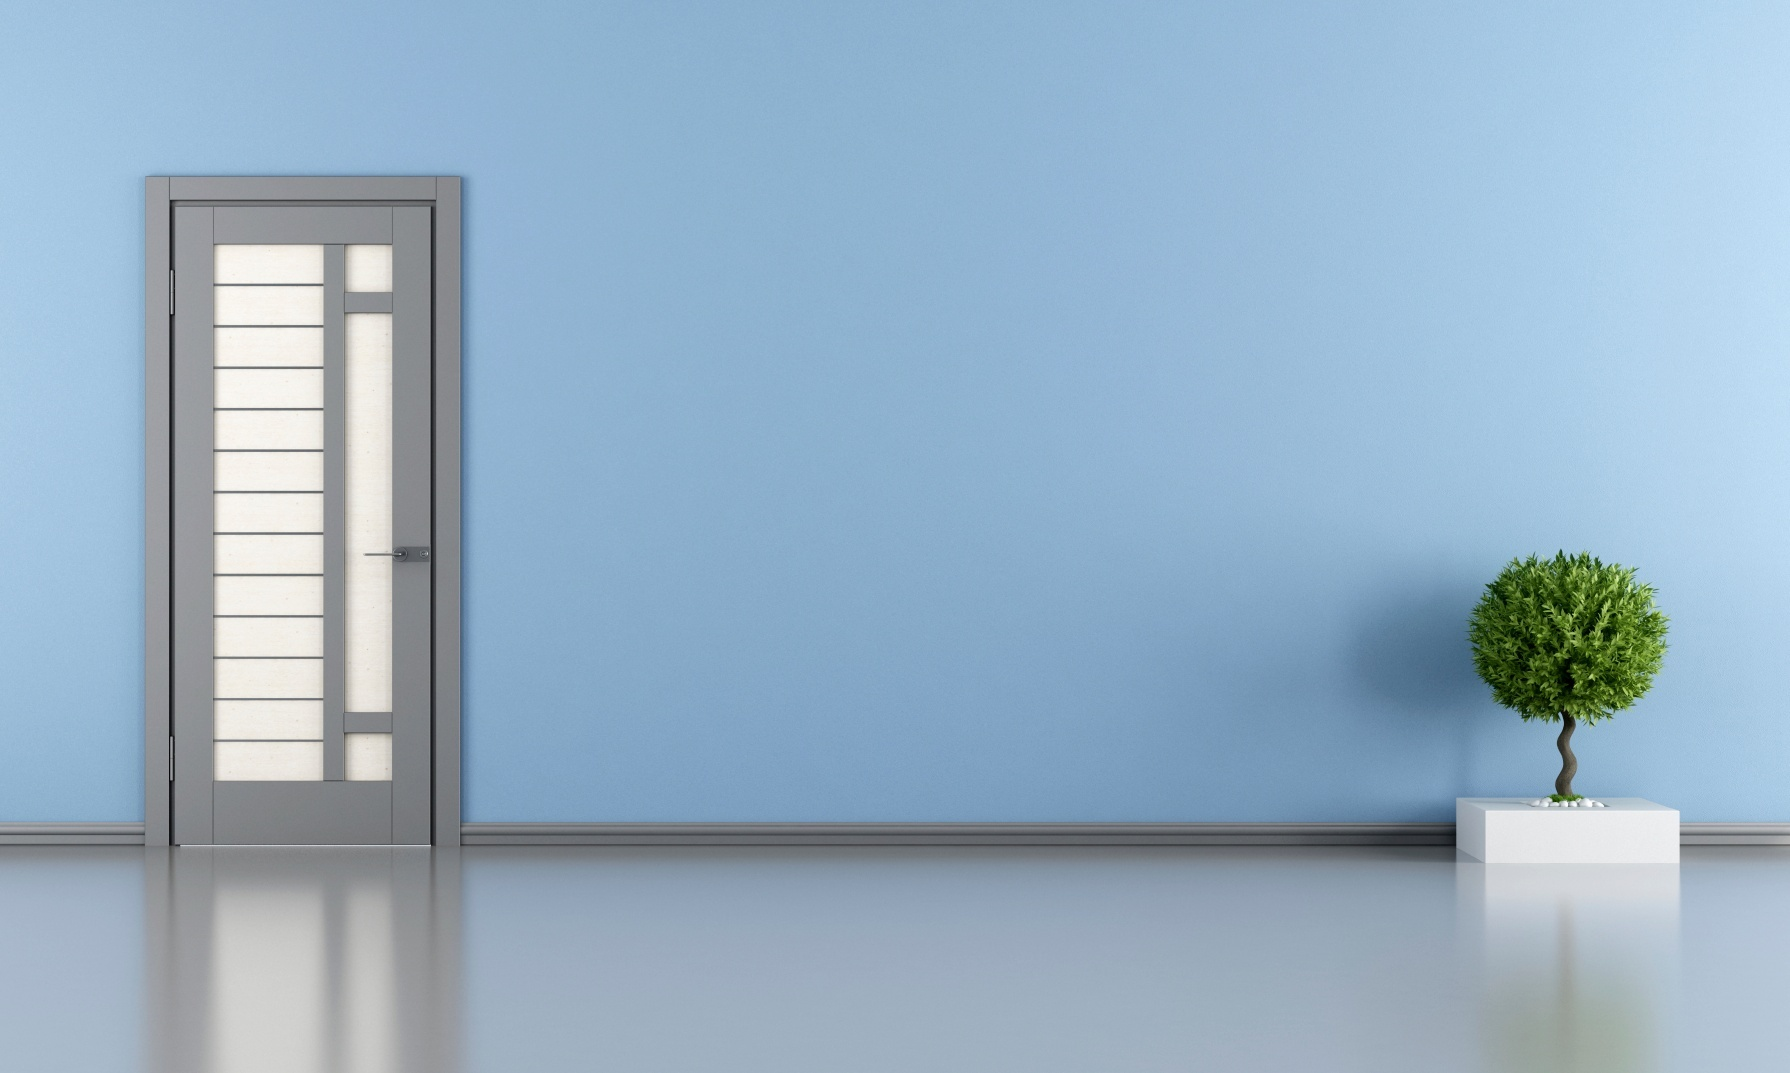 Blue-room-with-gray-door-000041690116_Medium